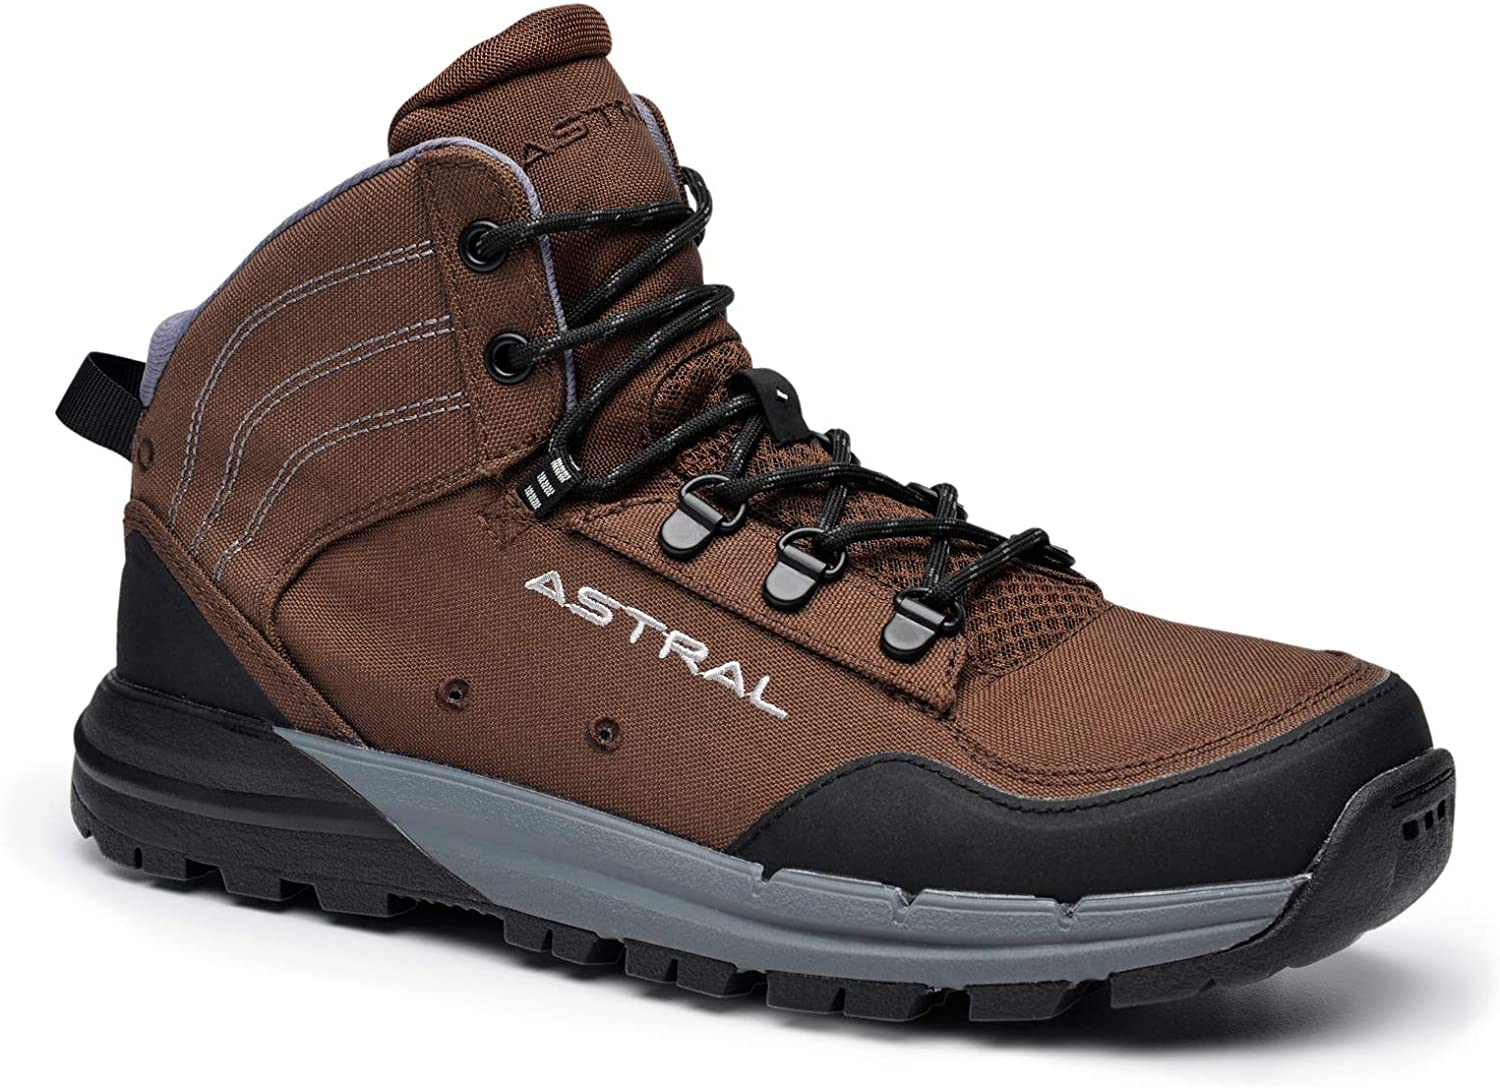 Astral, Men s TR1 Merge Minimalist Hiking Boots, Quick Drying and Lightweight, Made for Camping and Backpacking